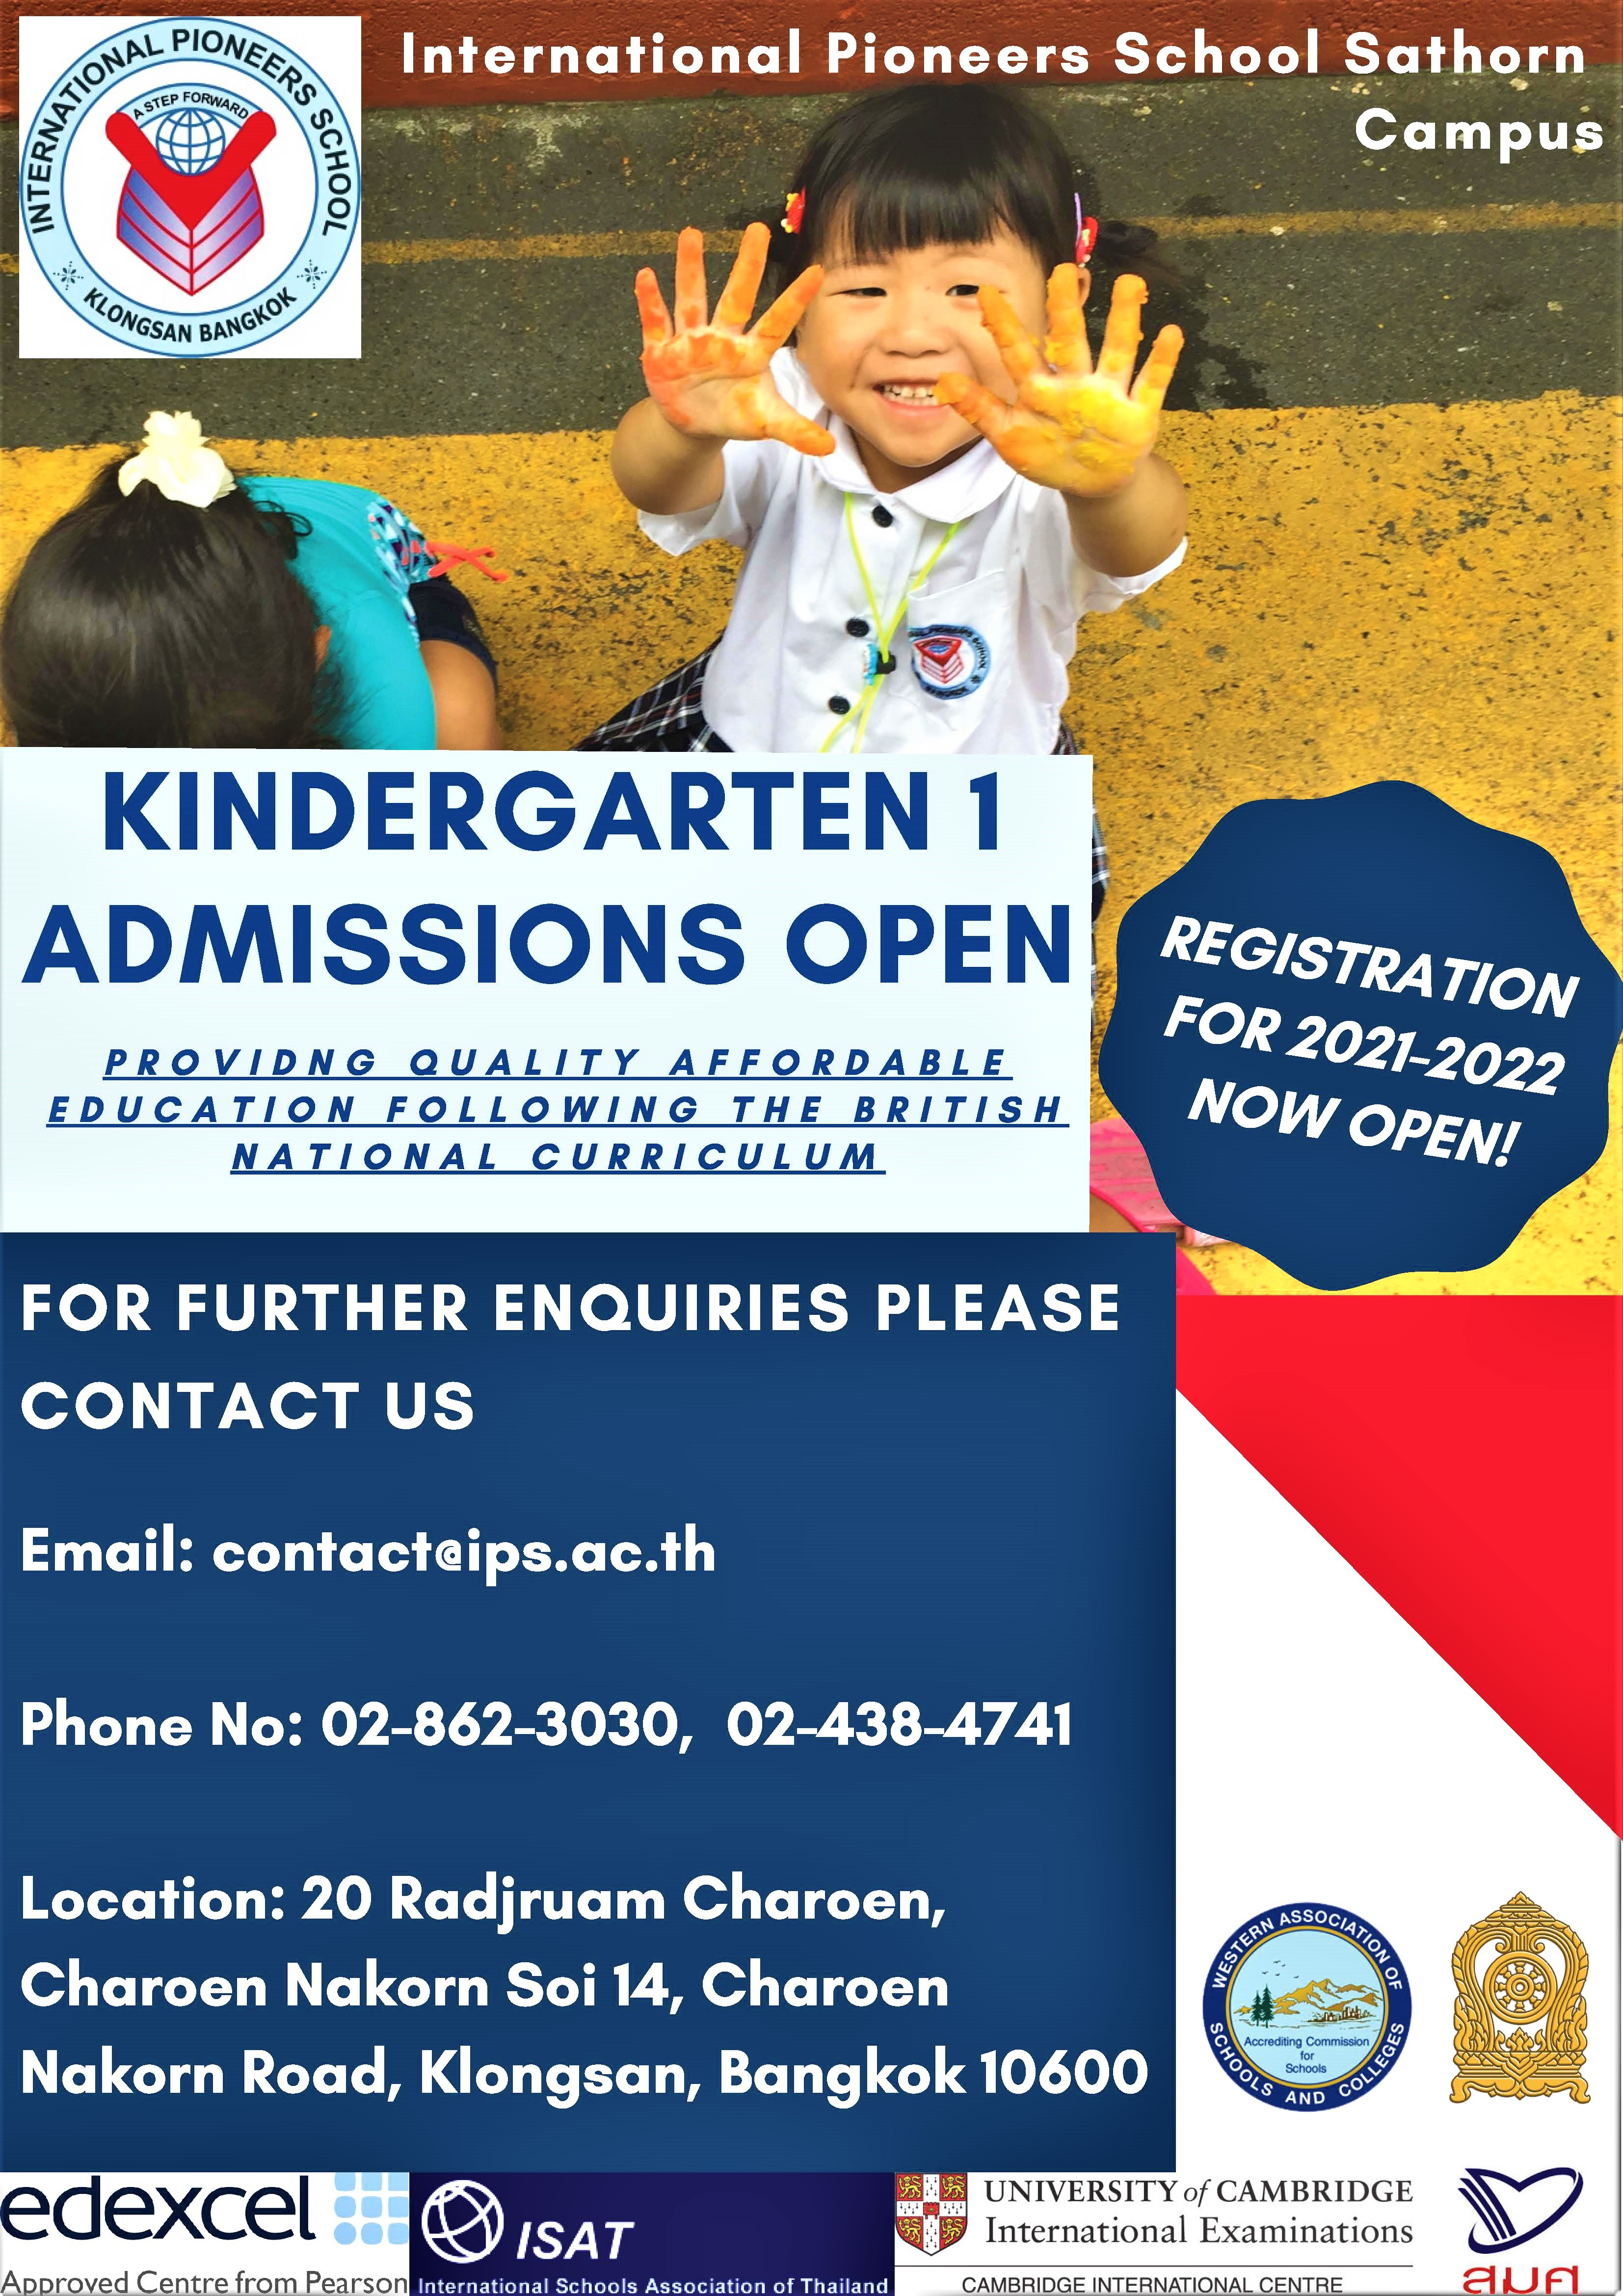 Kindergarten 1 Admissions OPEN for Academic Year 2021-2022